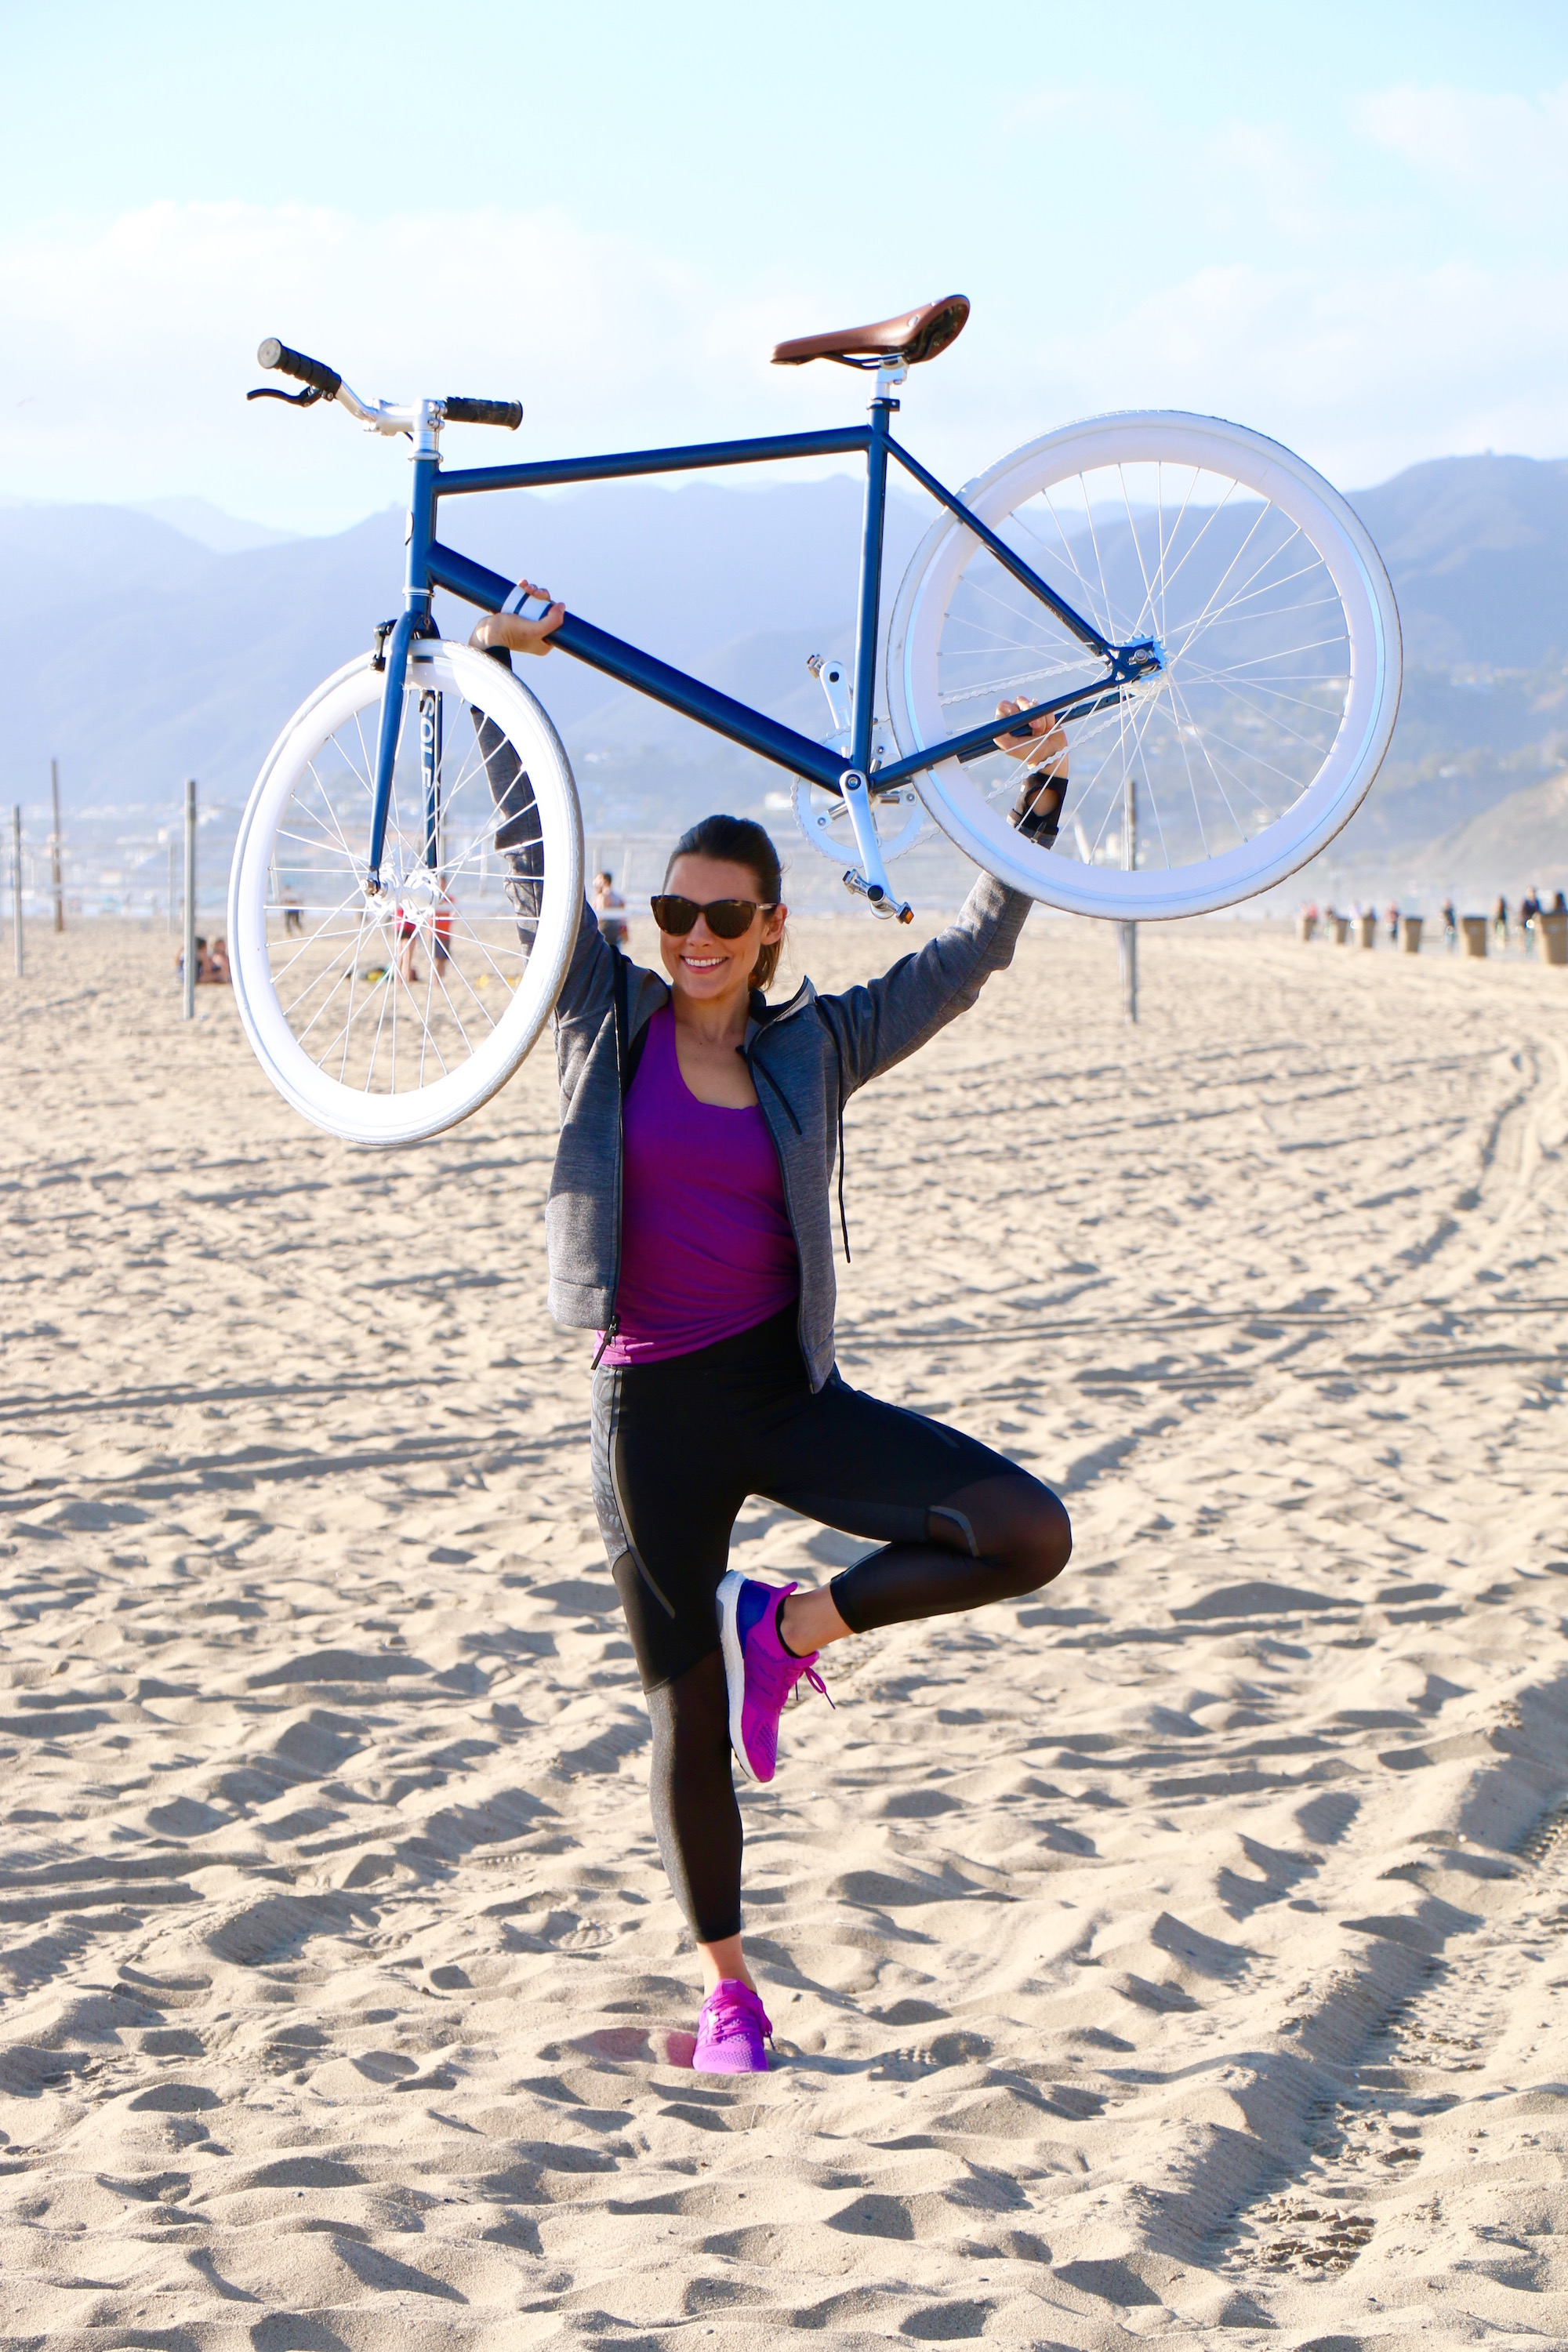 Bike Riding on Santa Monica Beach Boardwalk